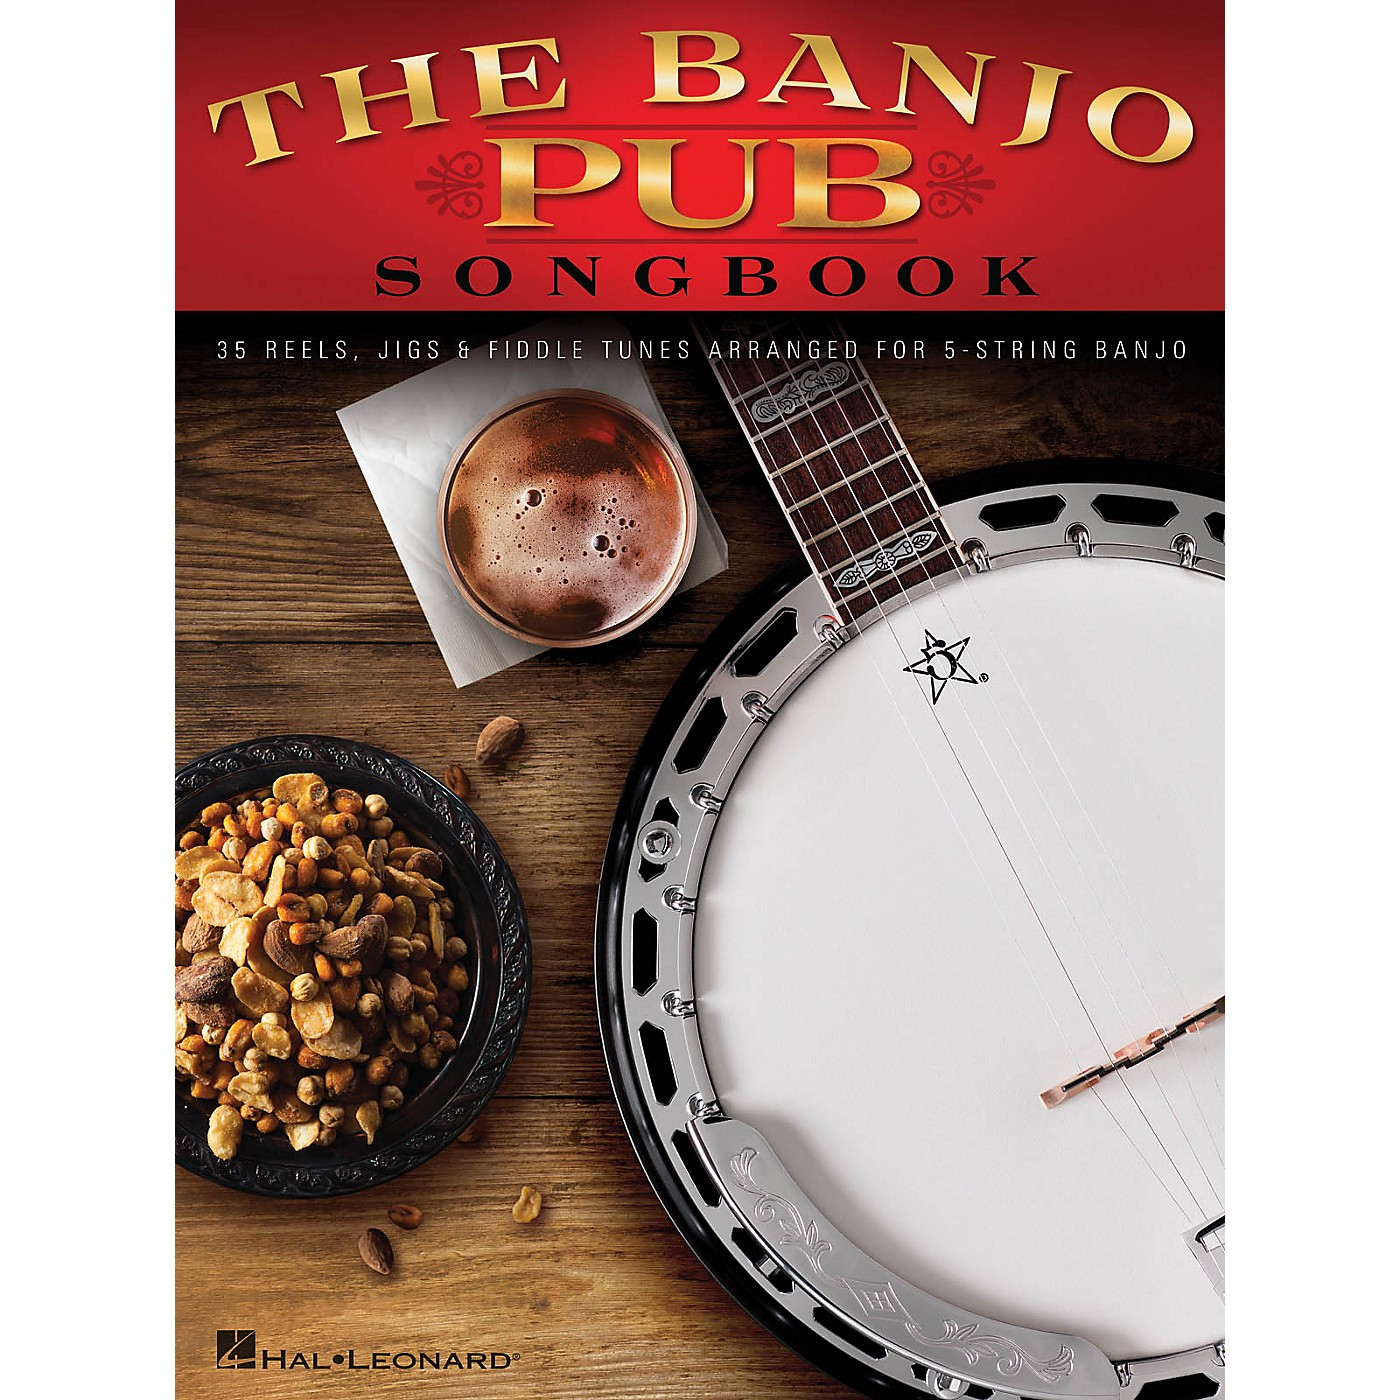 Hal Leonard The Banjo Pub Songbook (35 Reels, Jigs & Fiddle Tunes Arranged for 5-String Banjo) Banjo Series Softcover thumbnail